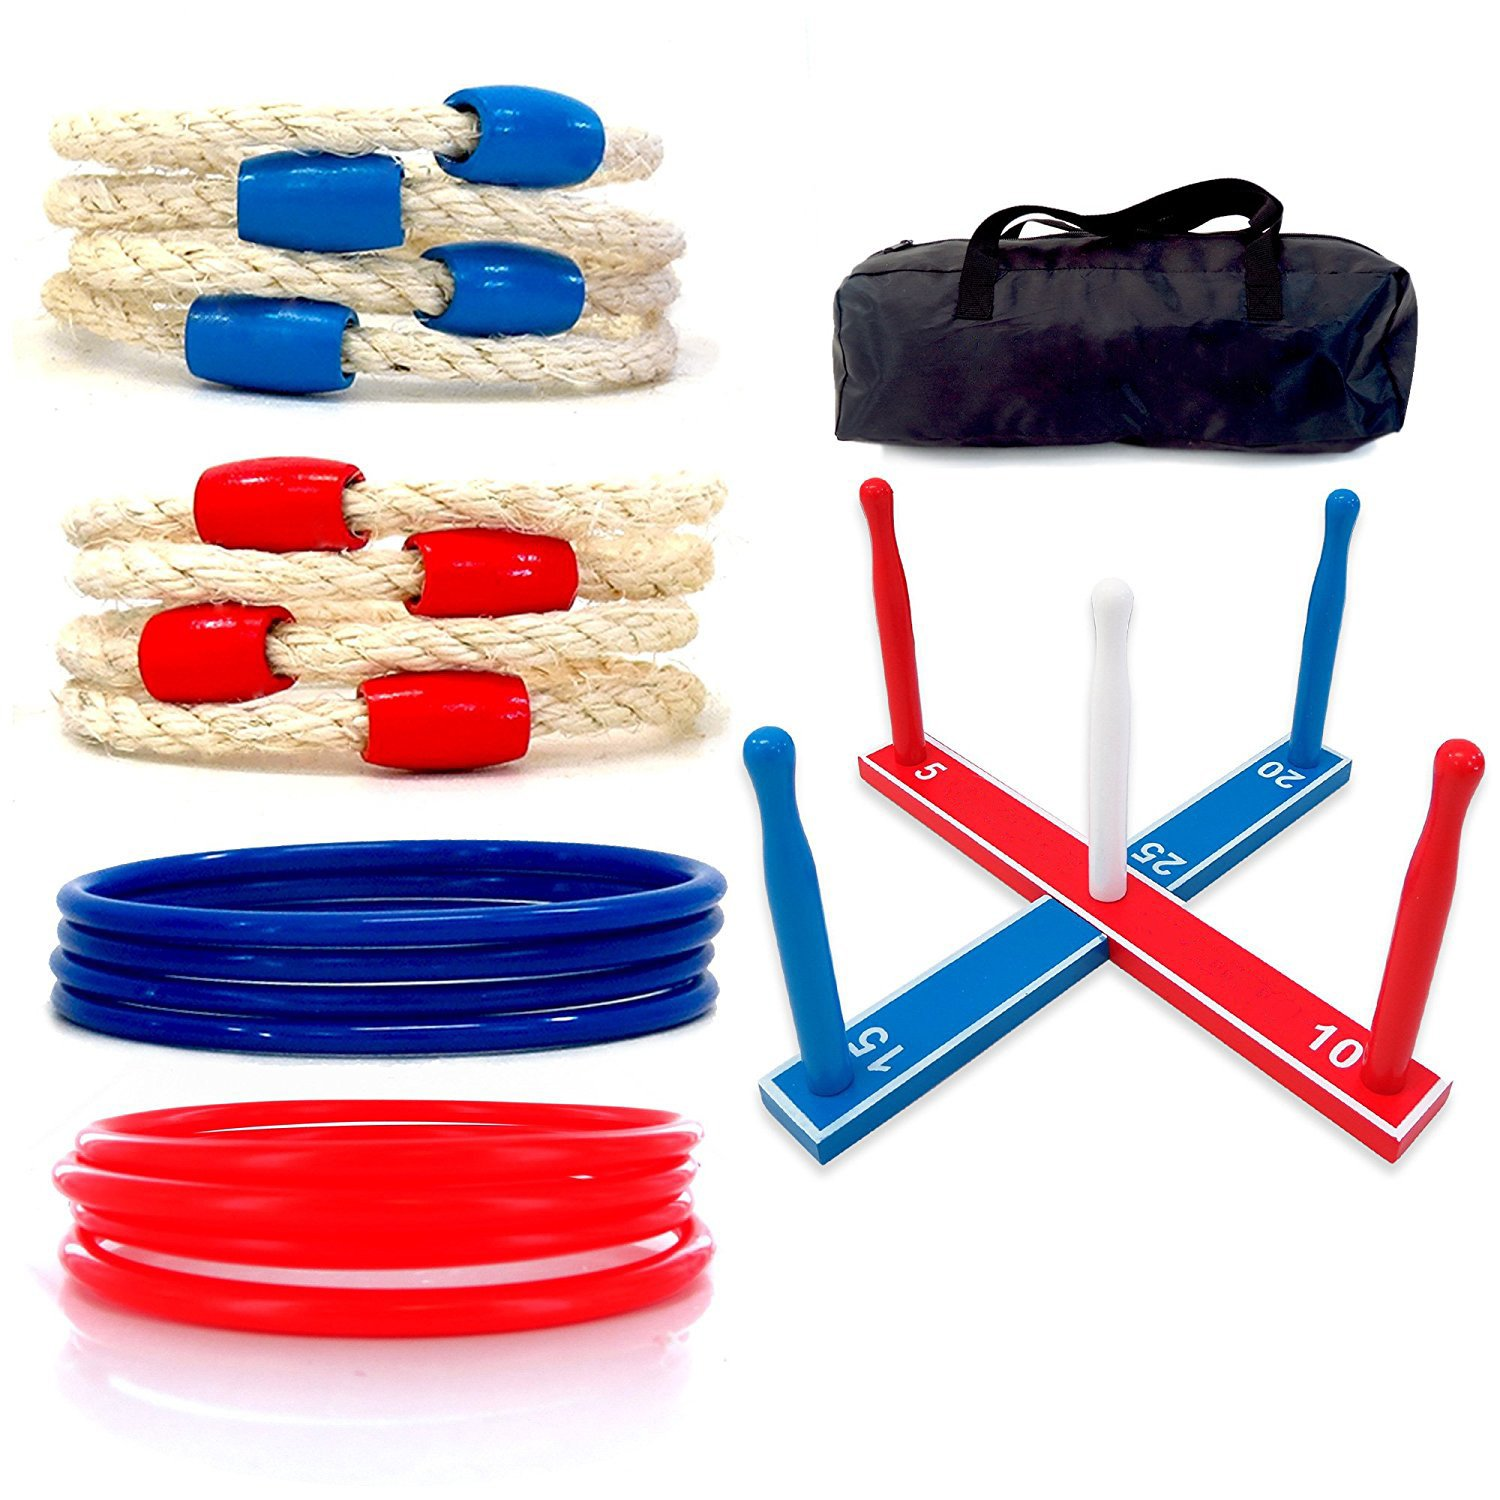 M.E.R.A. Premium Ring Toss Game Set, Improves Hand-Eye Coordination for Kids and Adults, Includes 8 Rope and 8 Plastic Rings, Game for Camping/ Carnival/ Outdoor/ Lawn/ Party/ Yard - with Carrying Bag